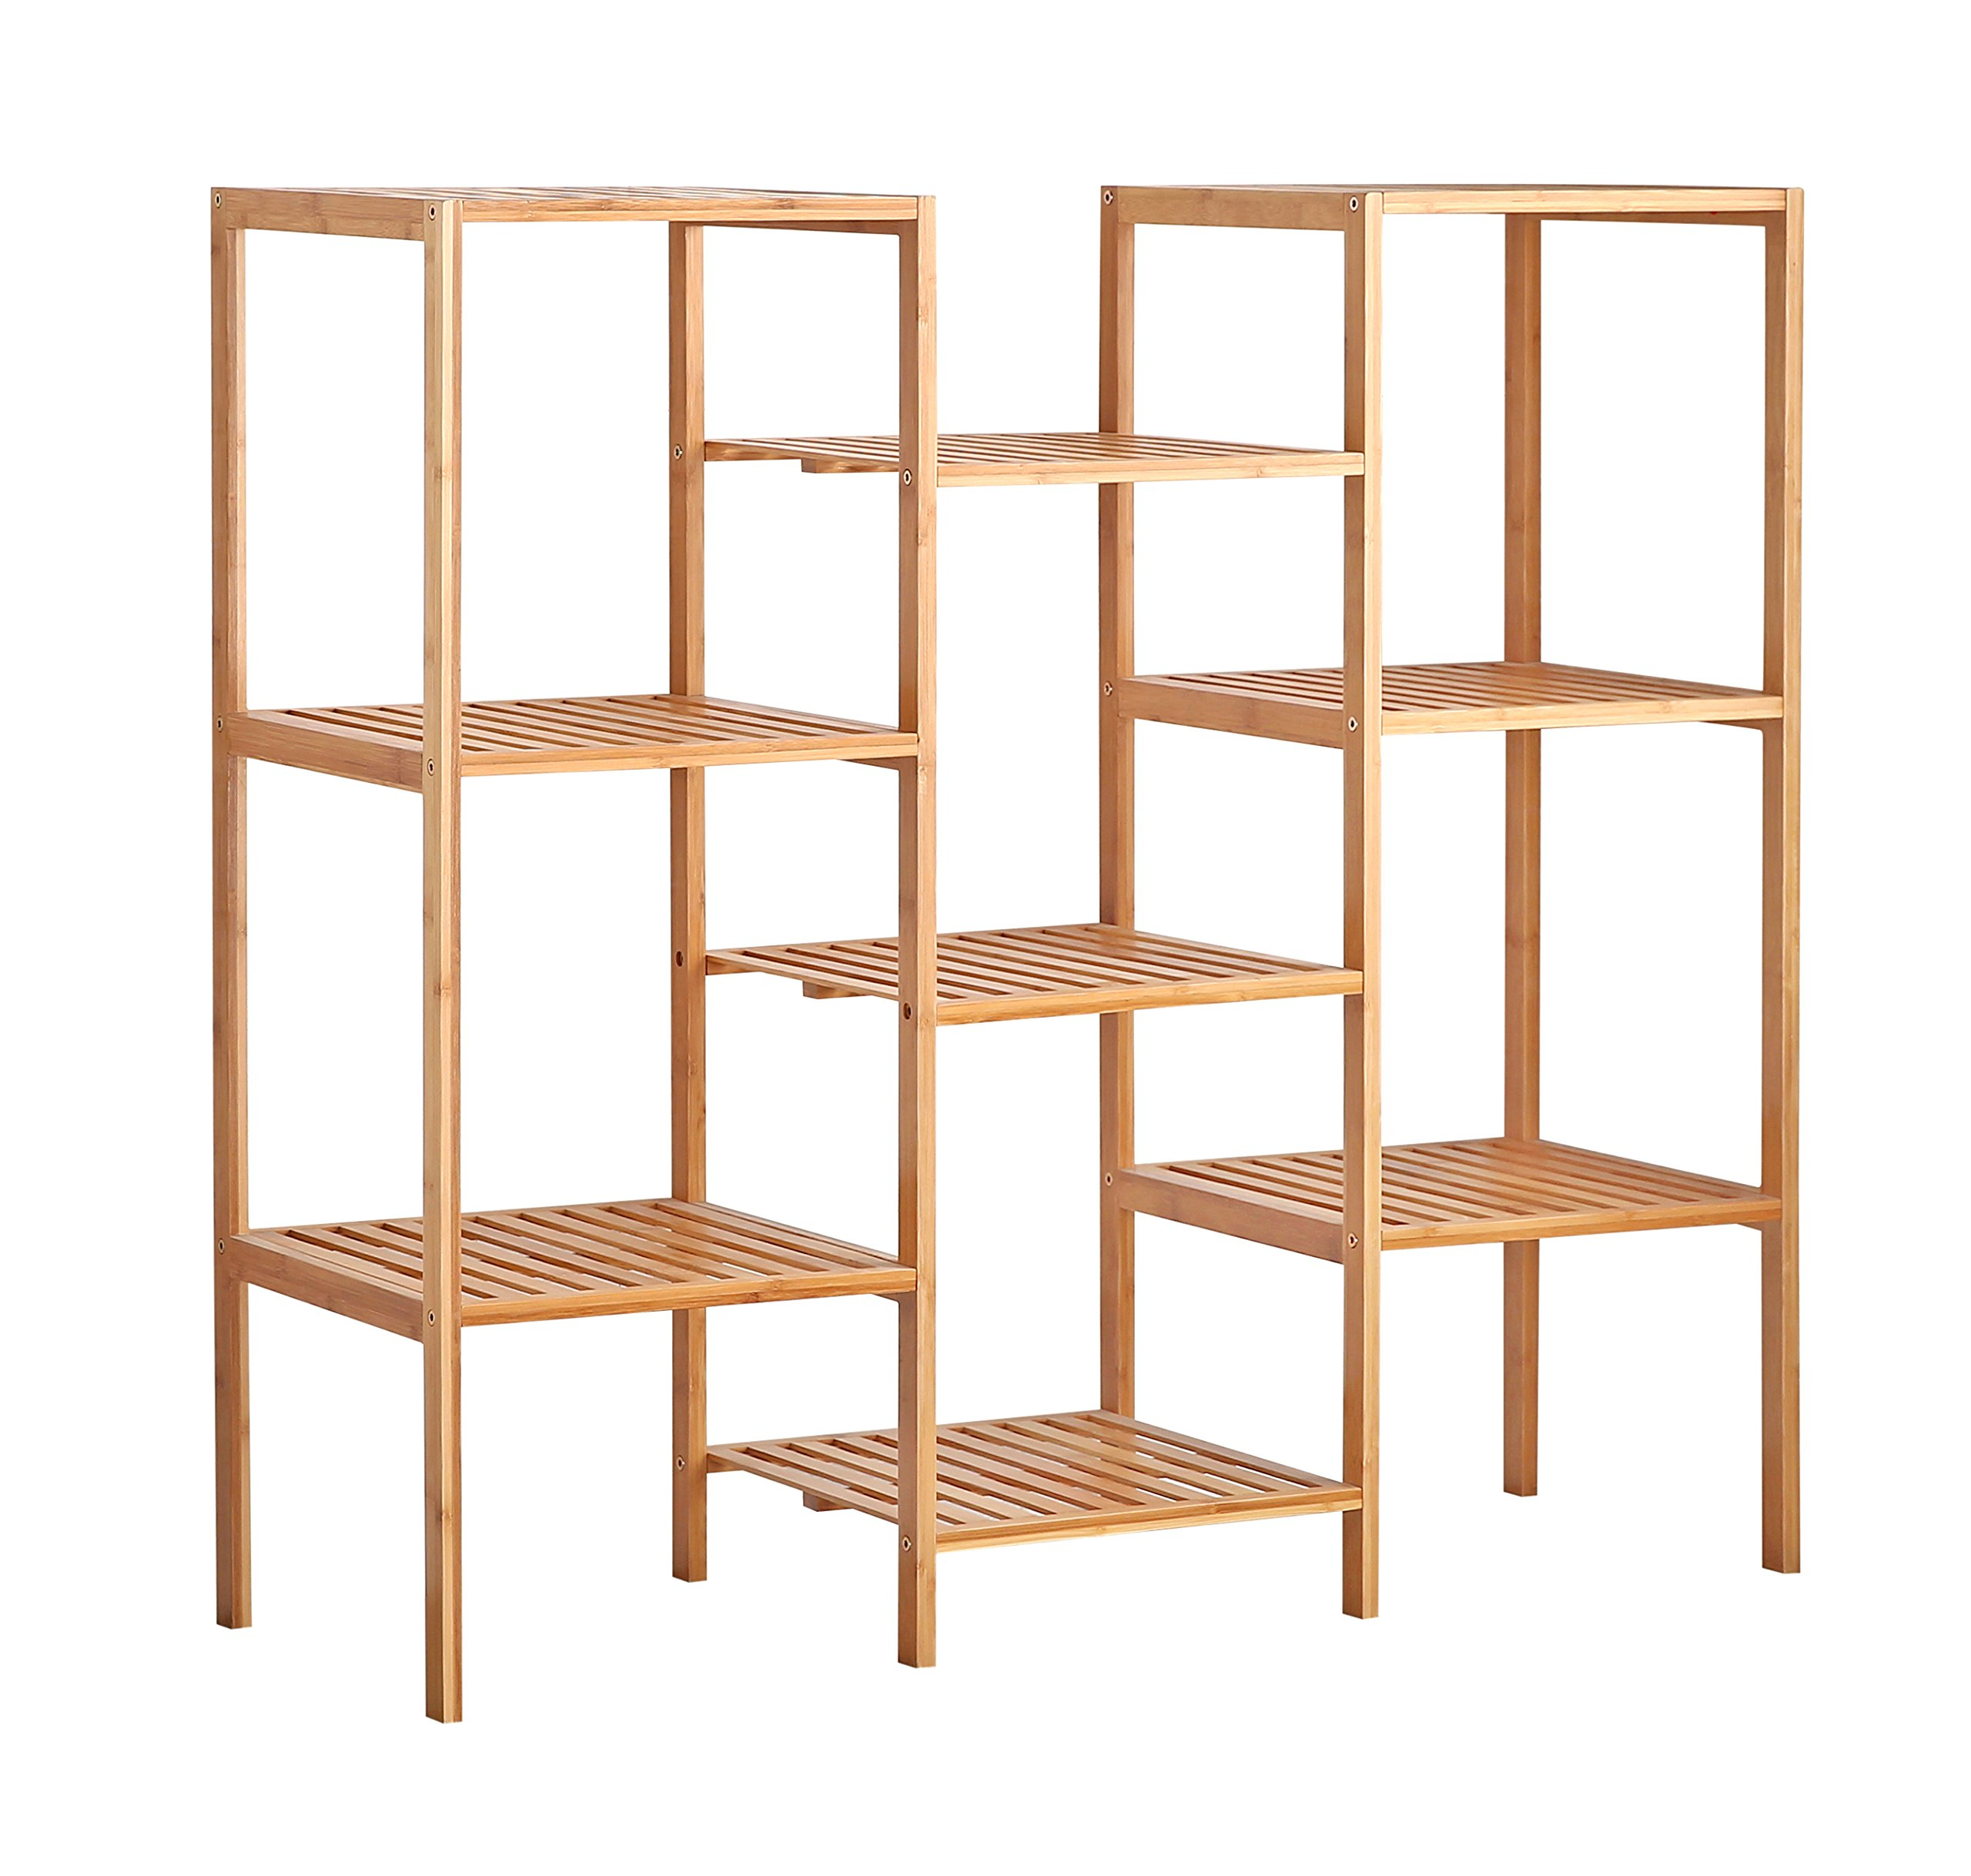 Finnhomy Natural Bamboo Shelf Plant Stand Display Wood Customizable Utility Shelf Bathroom Shelf 9-Tier Multifunctional Storage Rack Shelving Unit